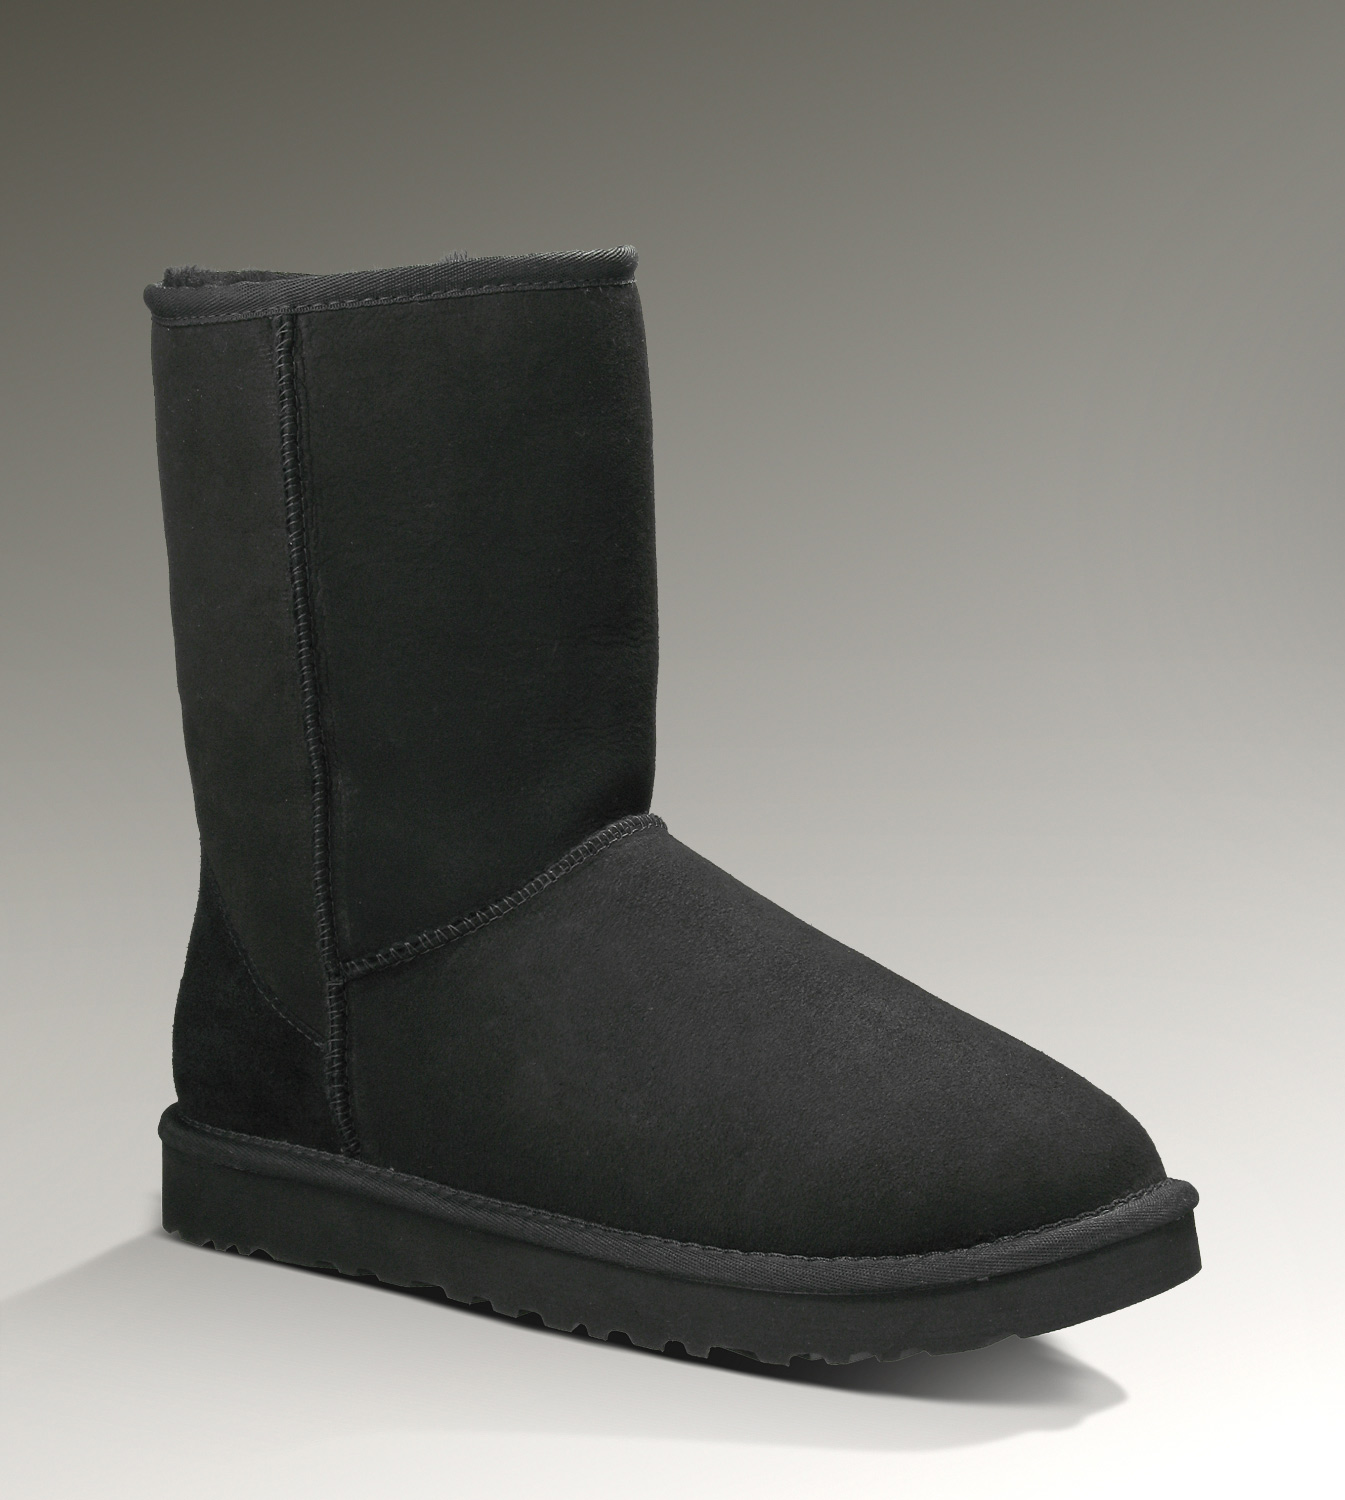 UGG Classic Short Stivali 5800 Nero [UGG Boots-345] - €92.54 : Ugg Boots Outlet online, footuggboots.com